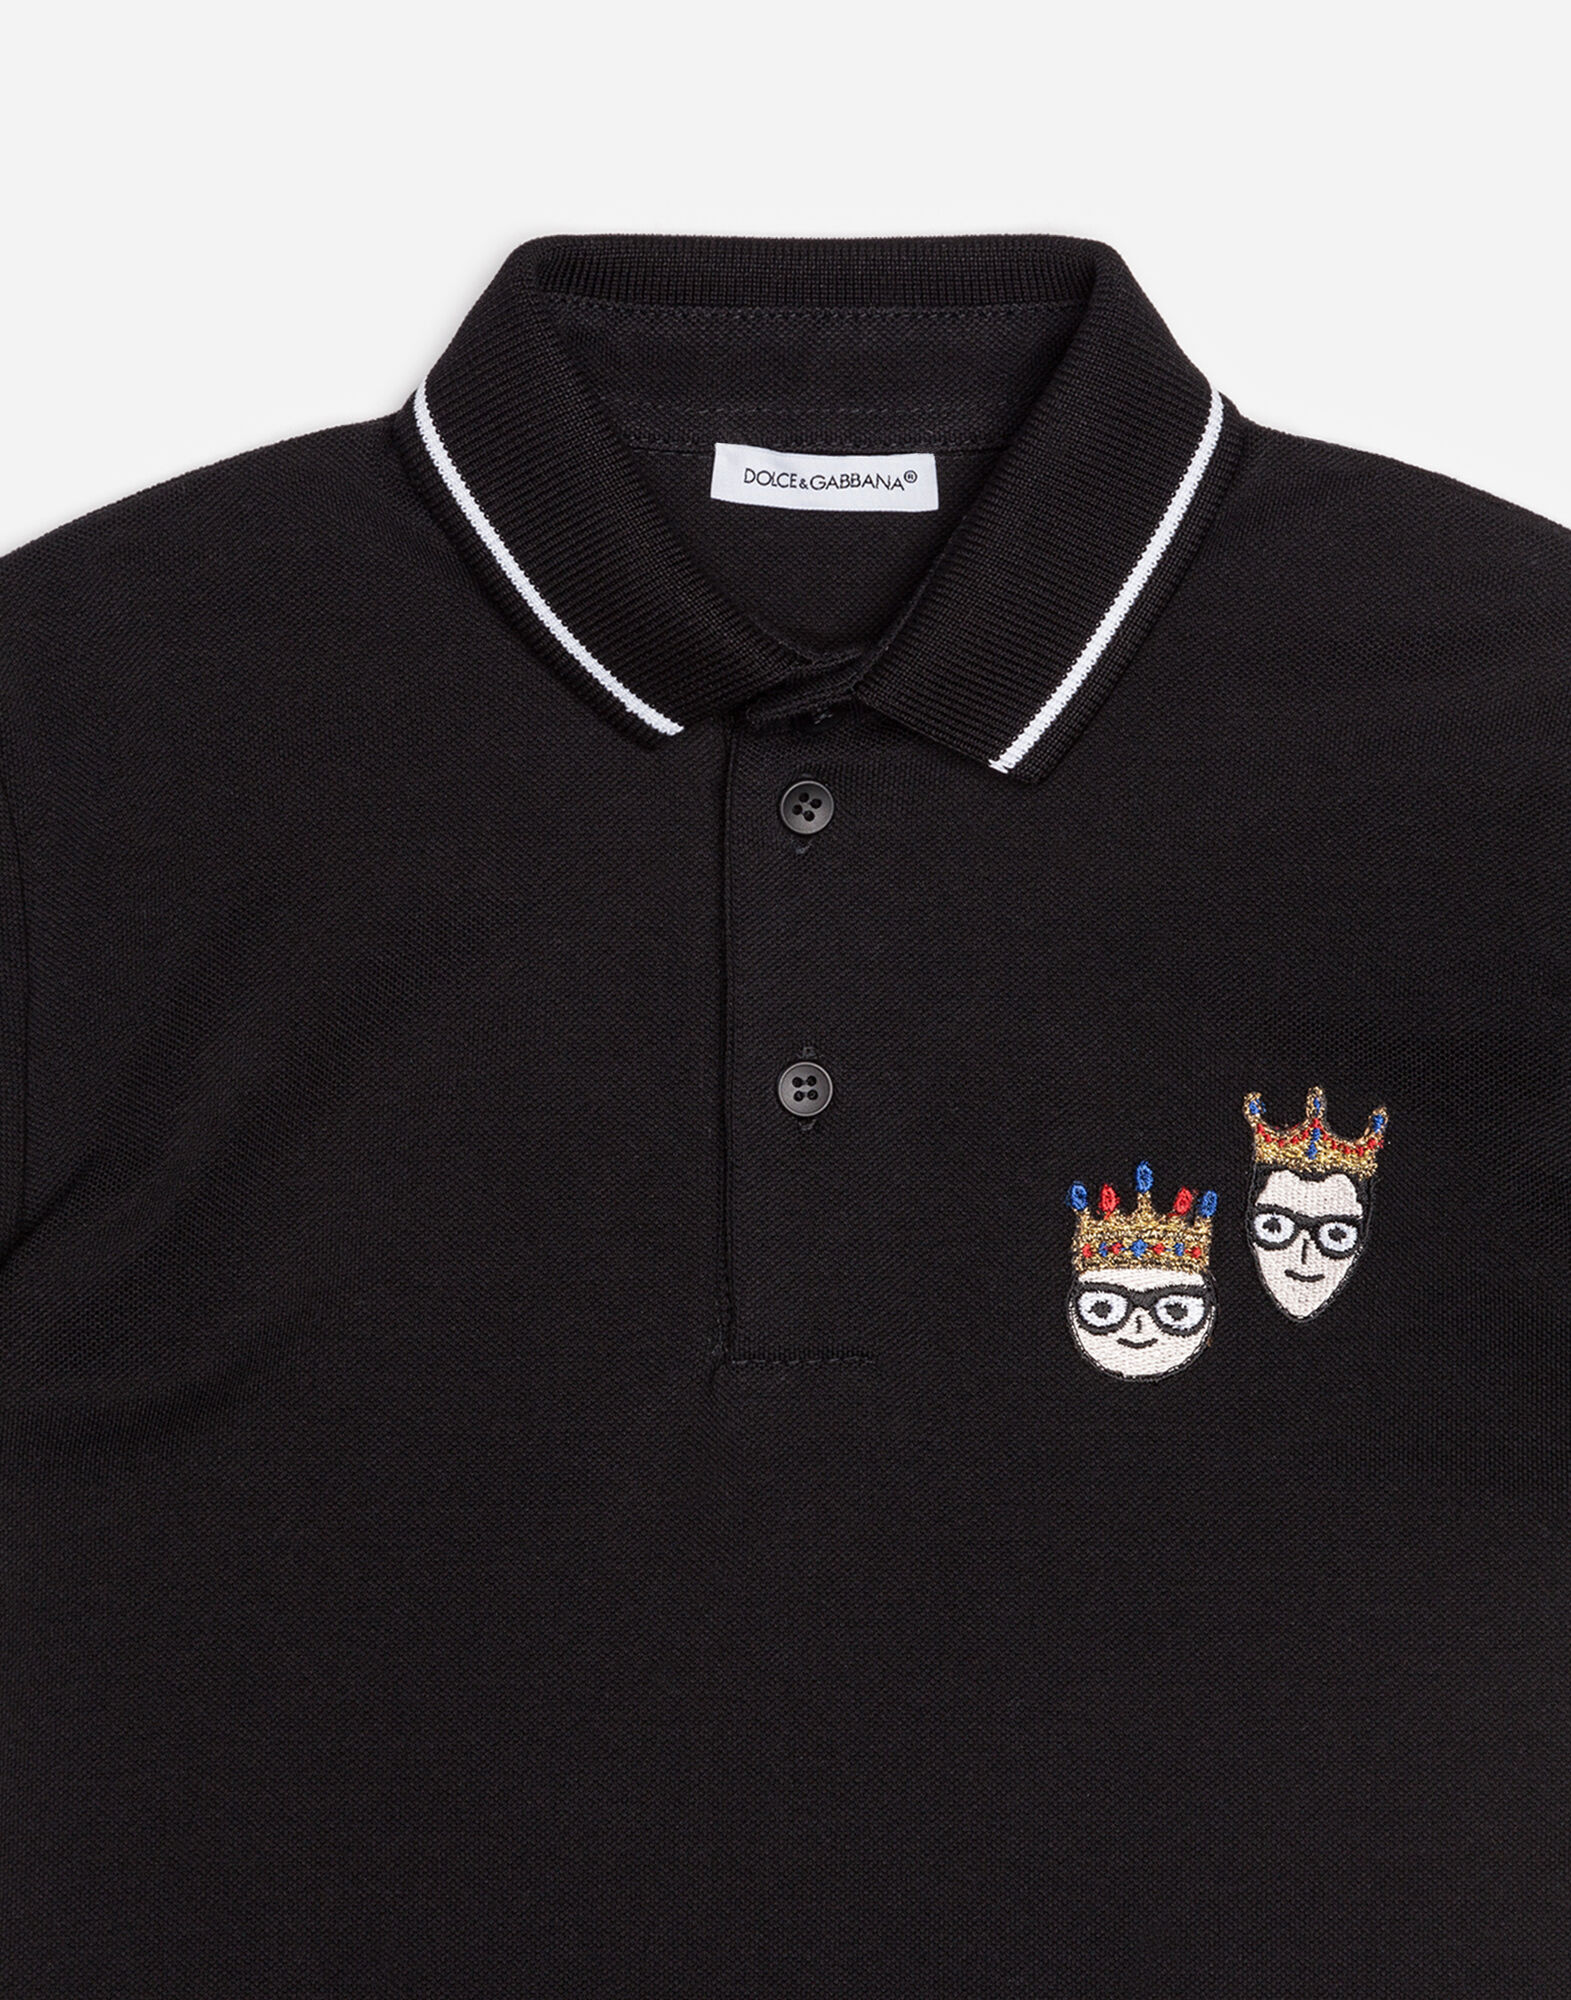 COTTON PIQUÉ POLO SHIRT WITH PATCHES OF THE DESIGNERS